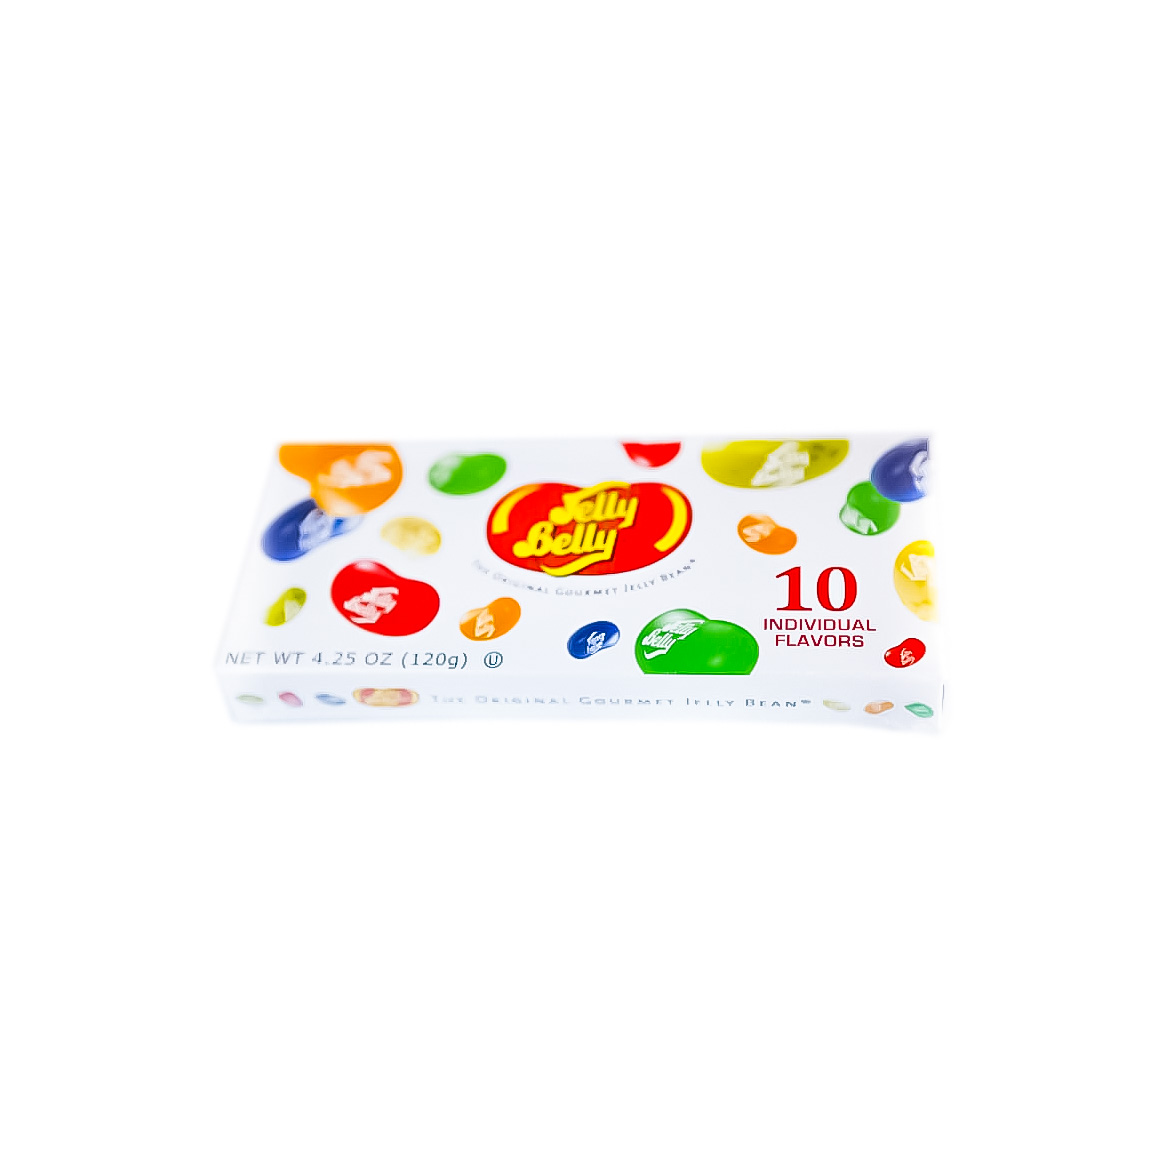 10 flavor jelly belly